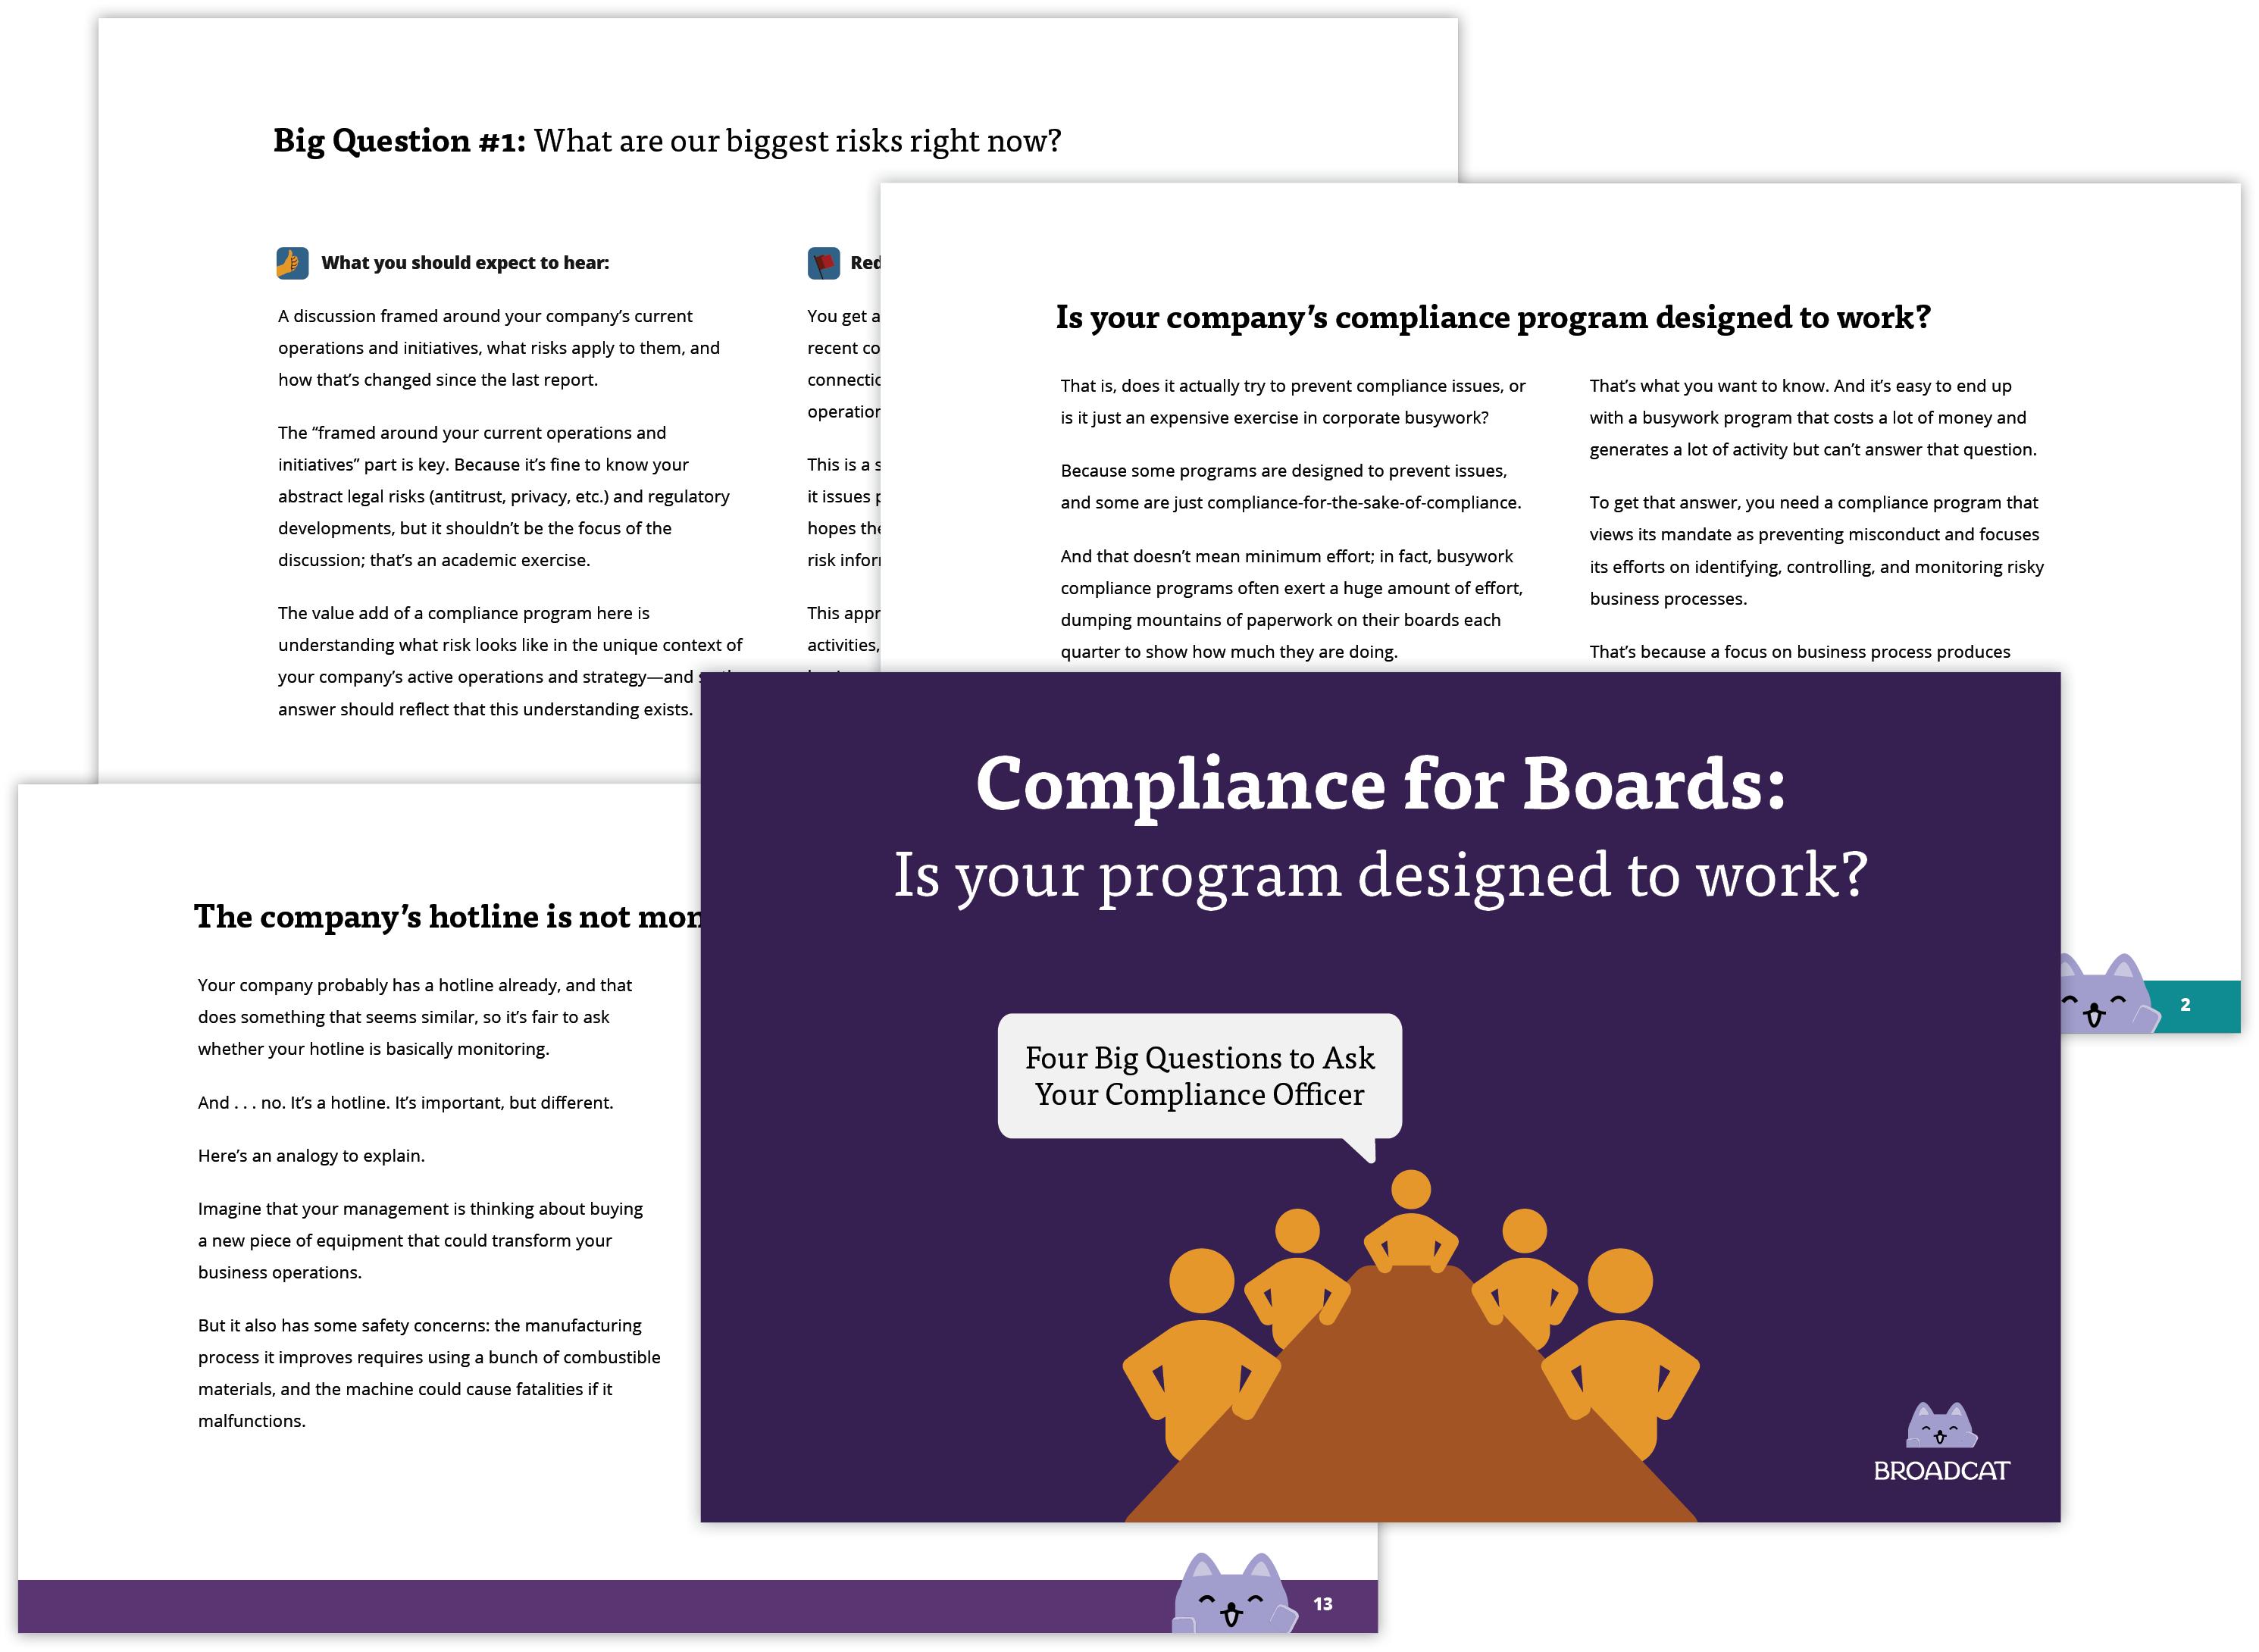 a group of slides from the Compliance for Boards desk